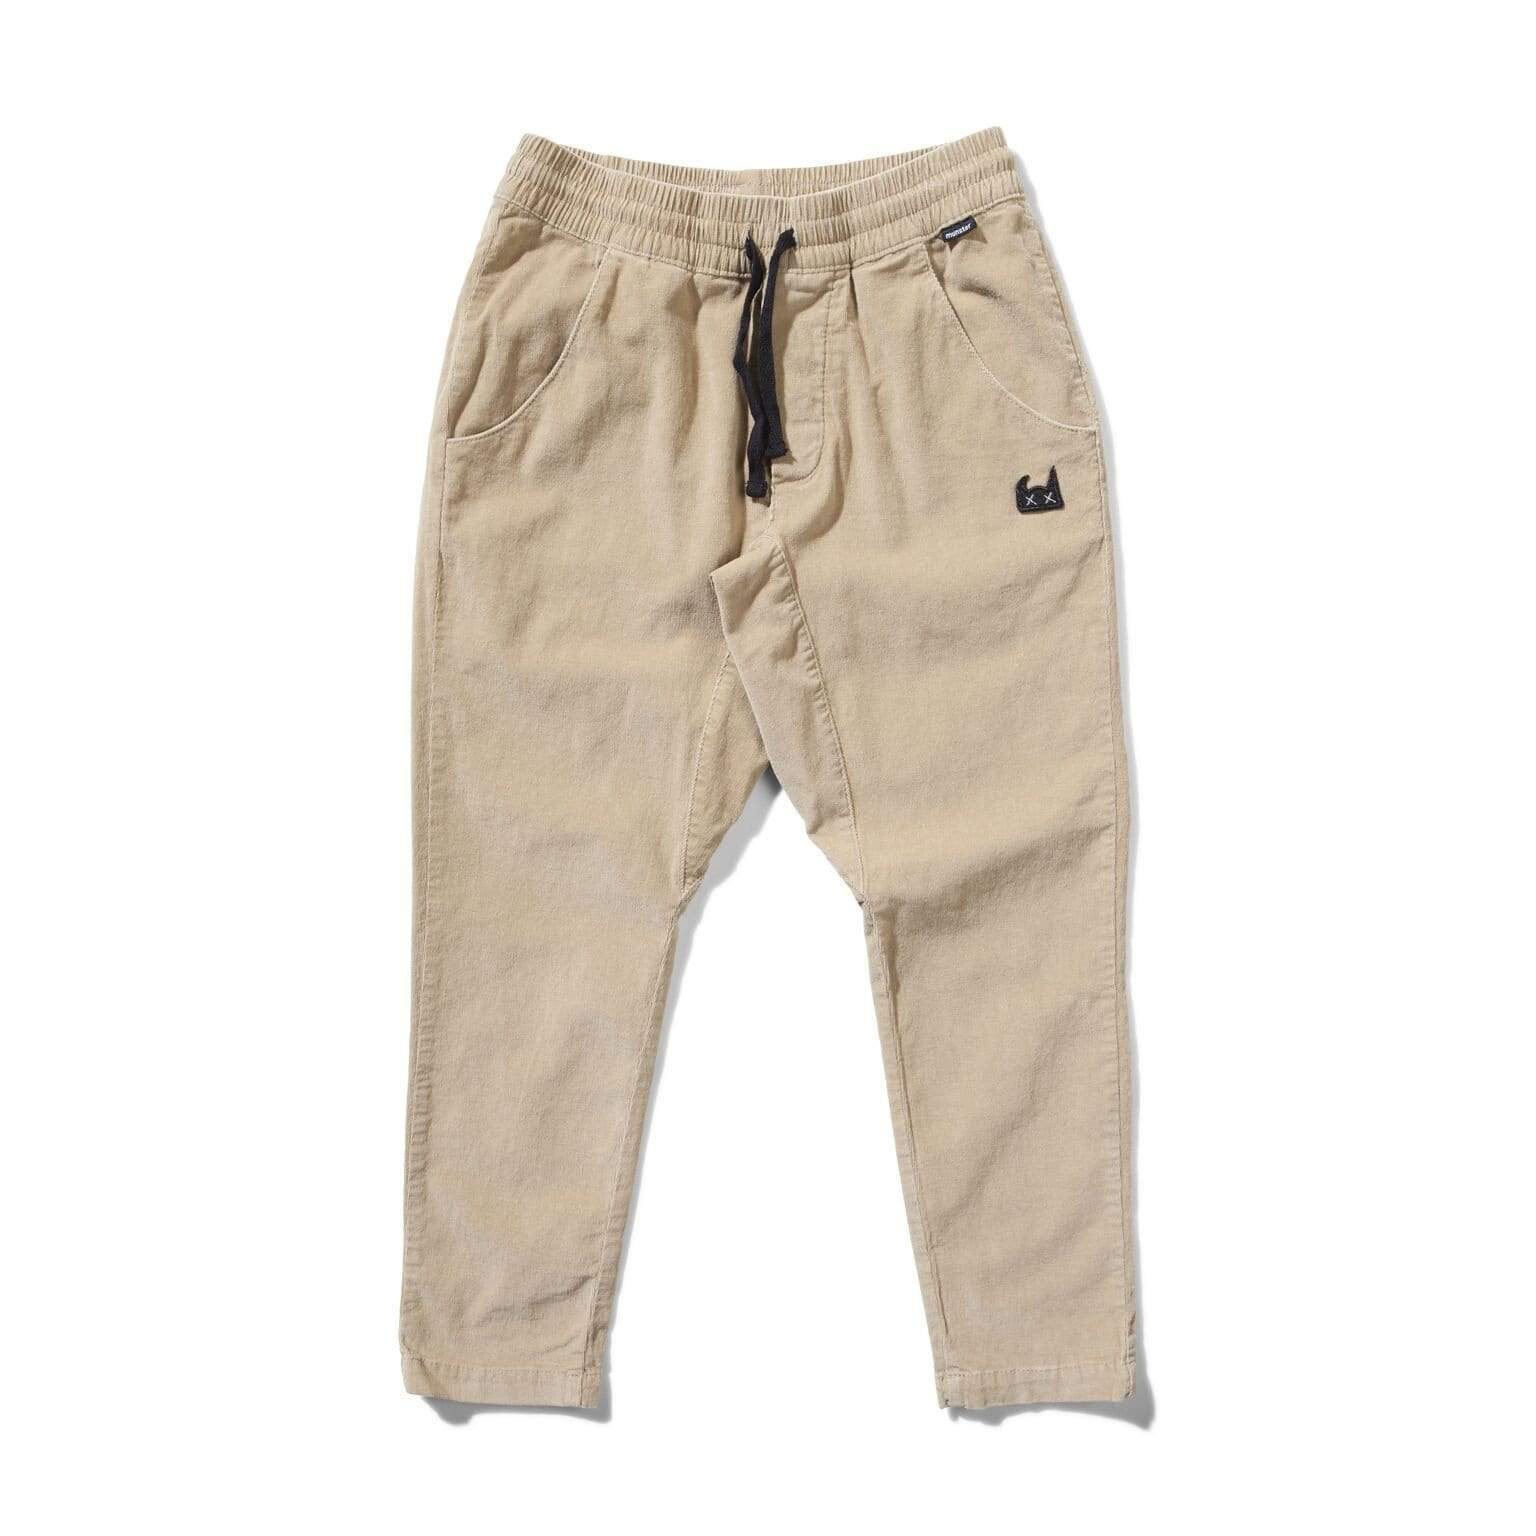 Munster Pants Spike Pant - Khaki